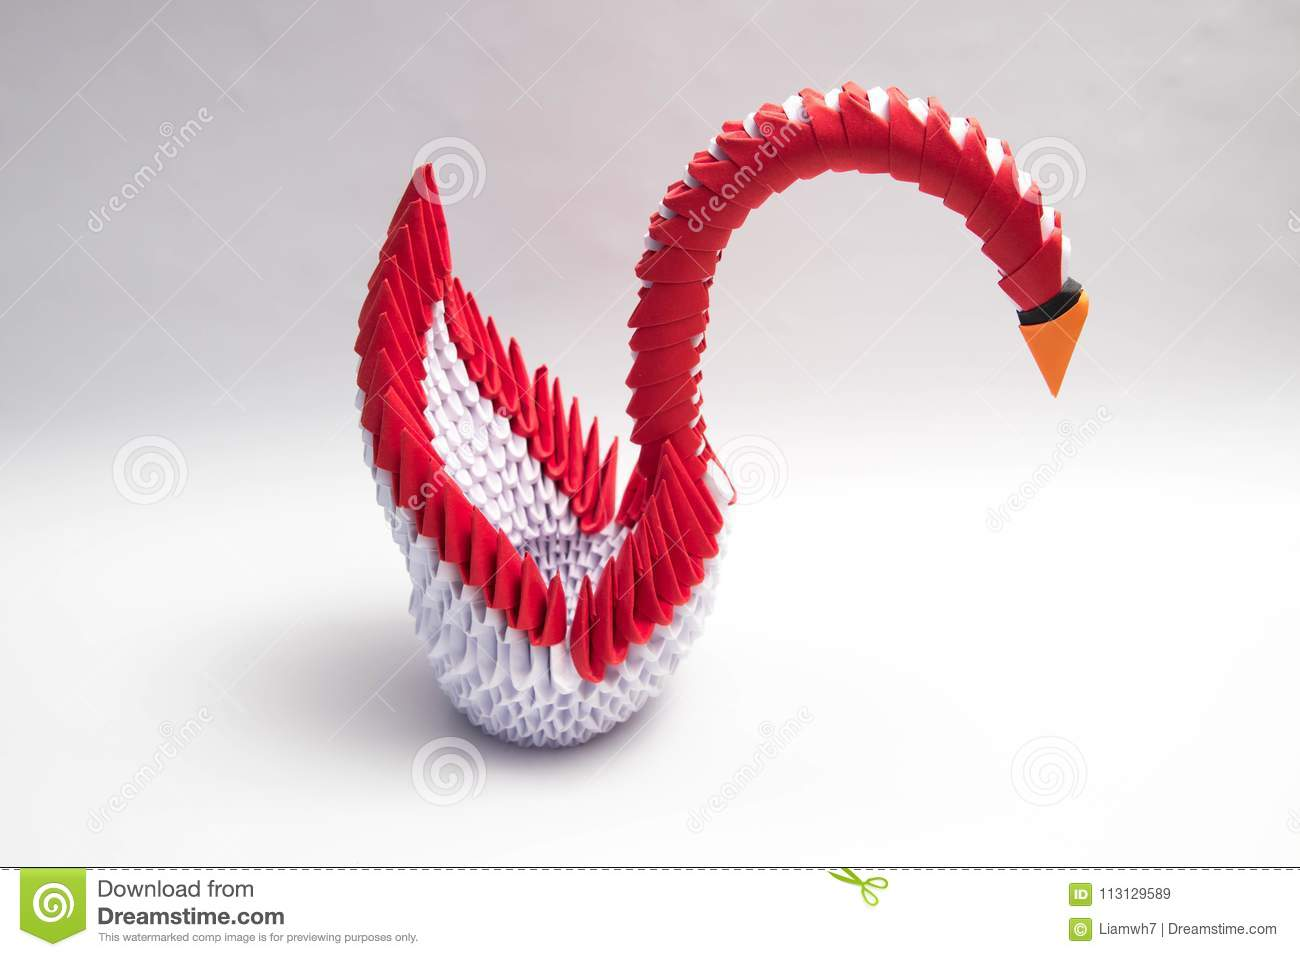 3d Origami Swan Bird Red Stock Image Image Of Origami 113129589